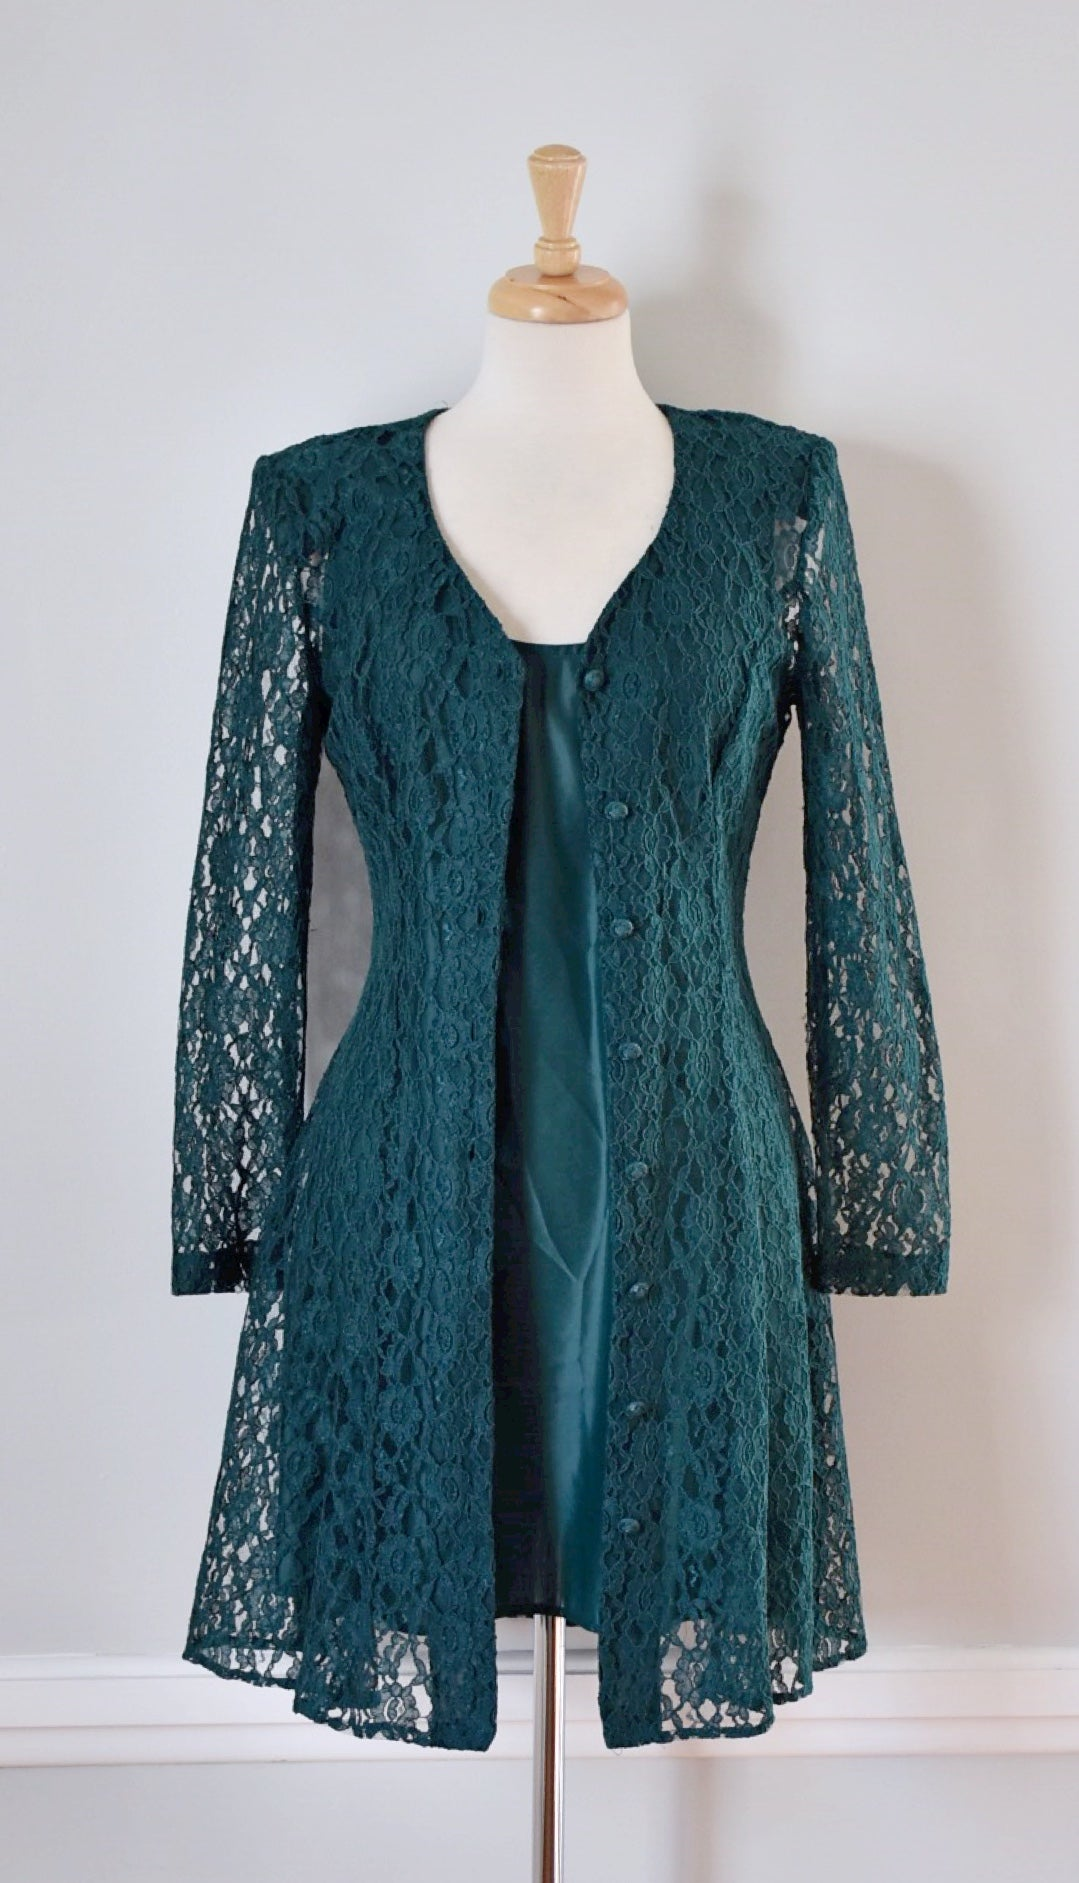 90s Vintage Boho Inspired Green Lace Dress